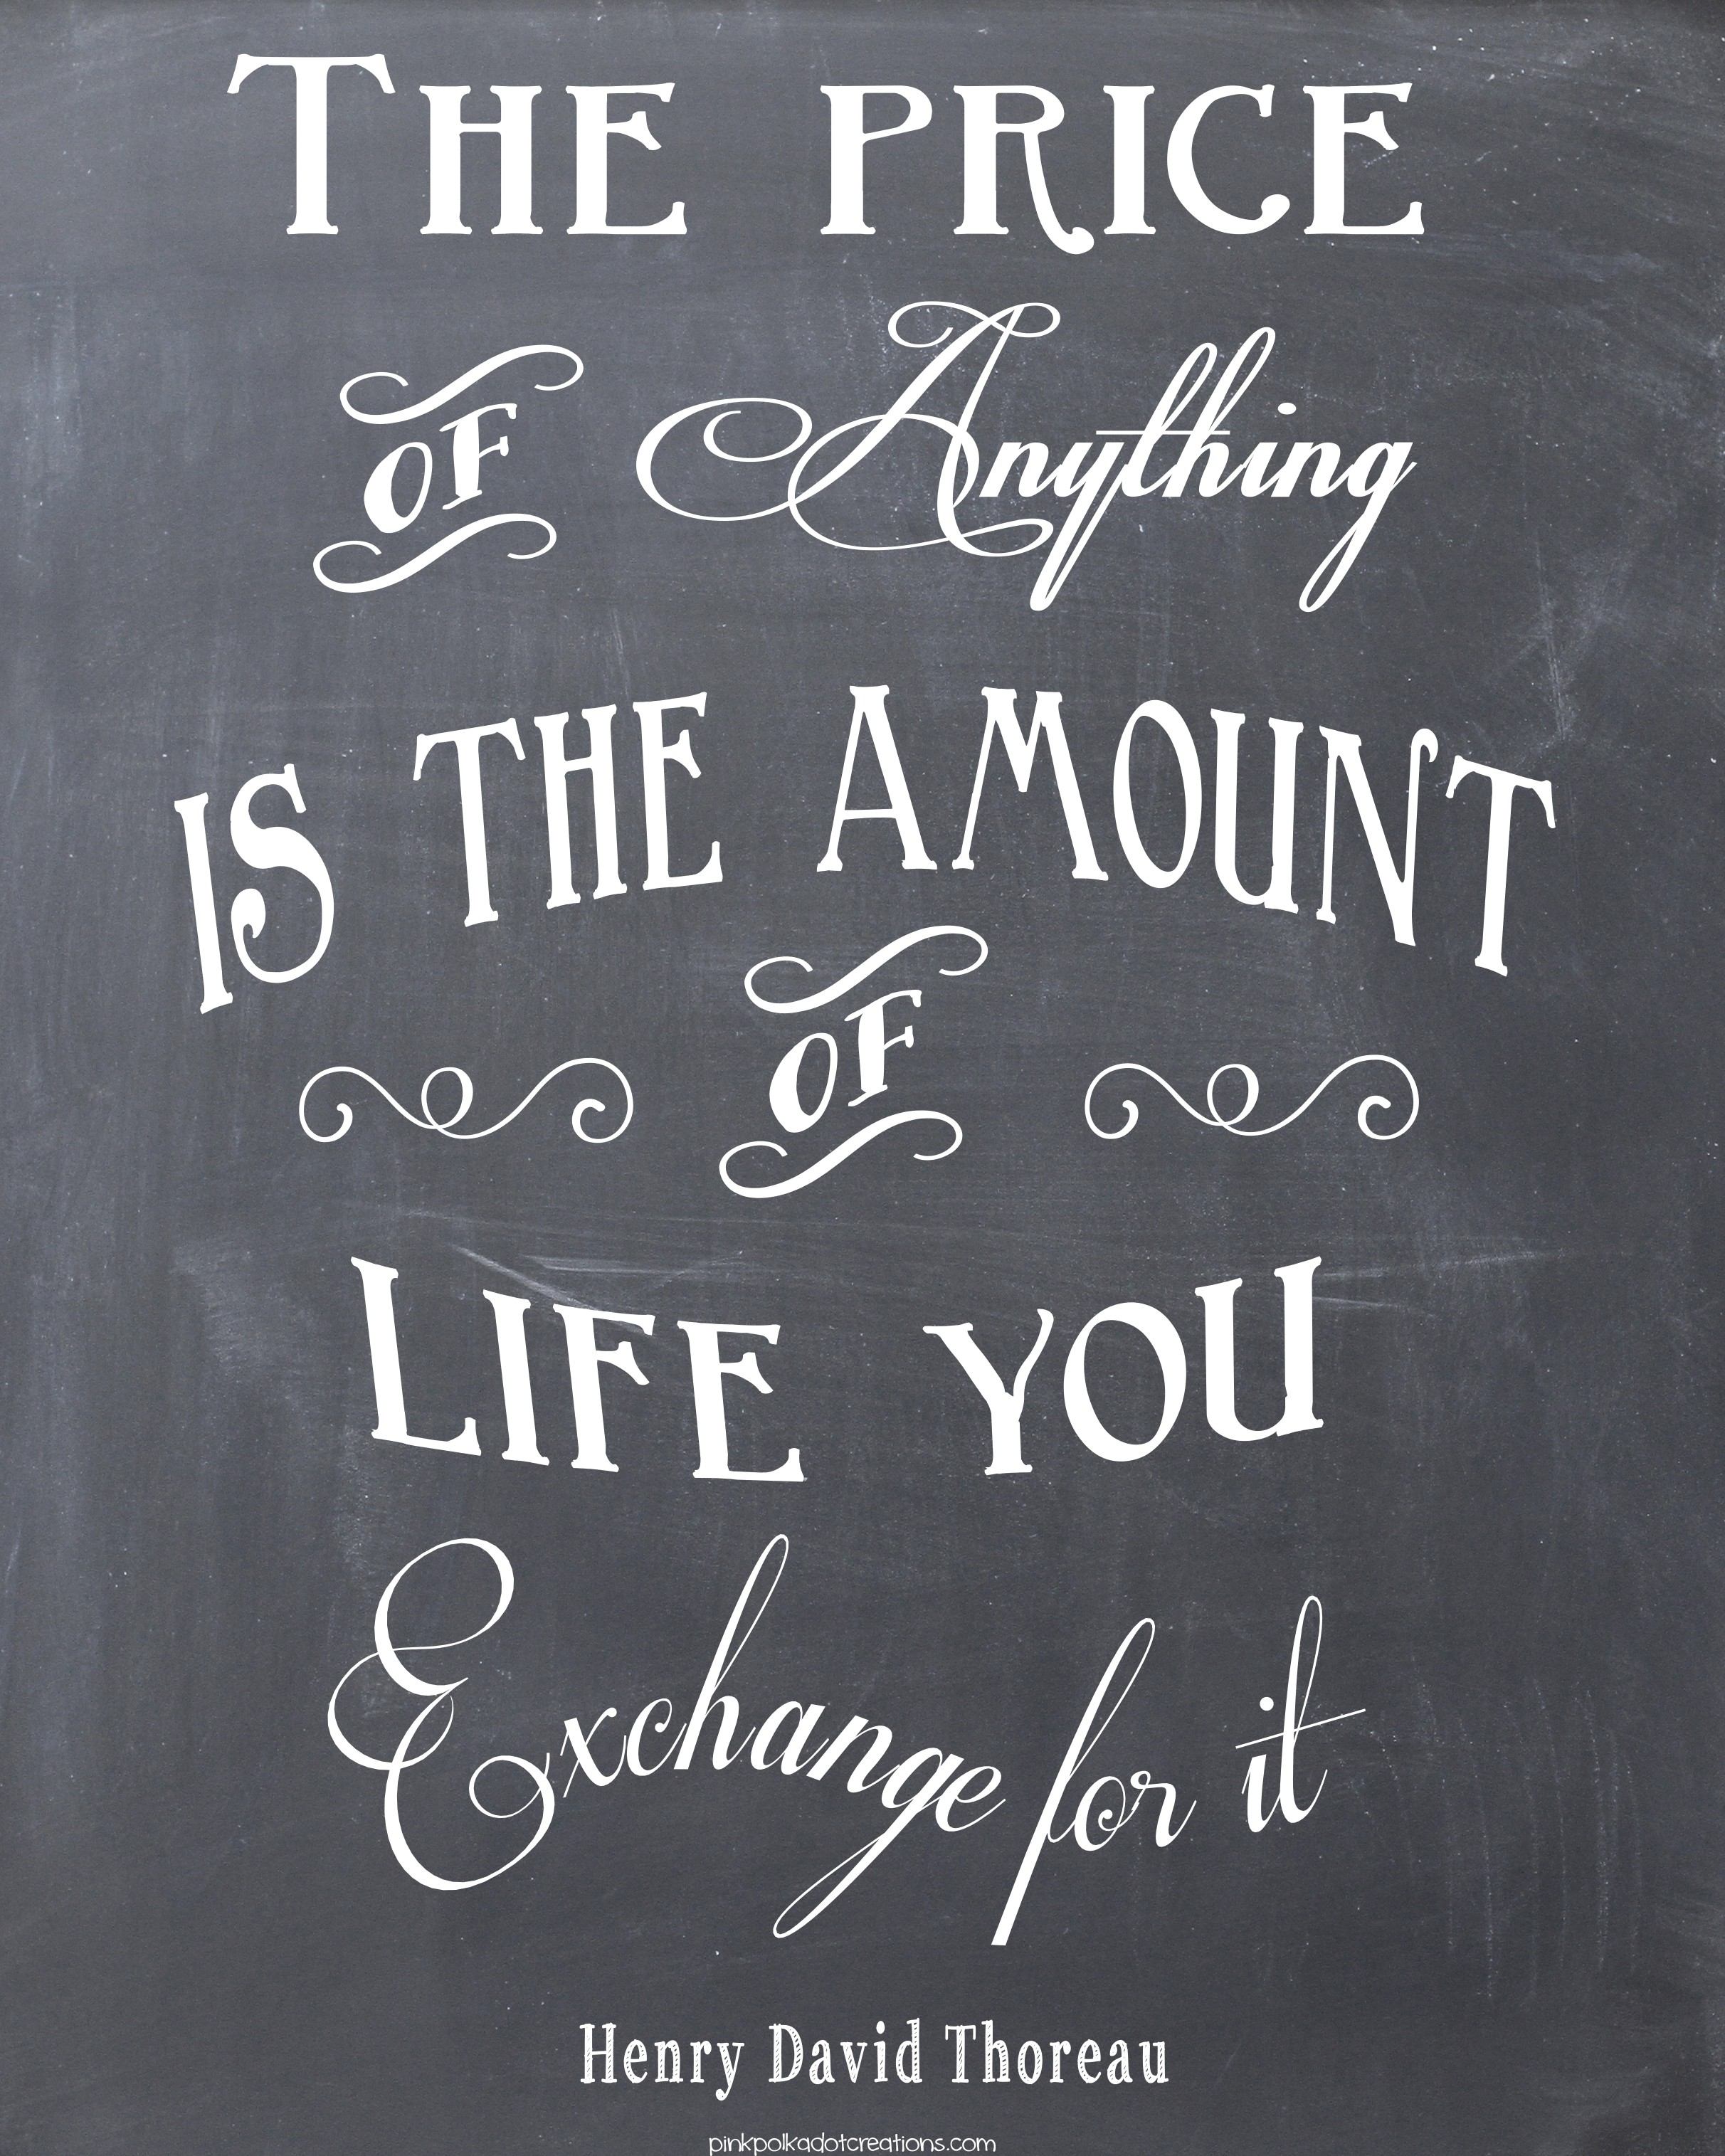 Quotes And Sayings: Kitchen Chalkboard Sayings Quotes. QuotesGram